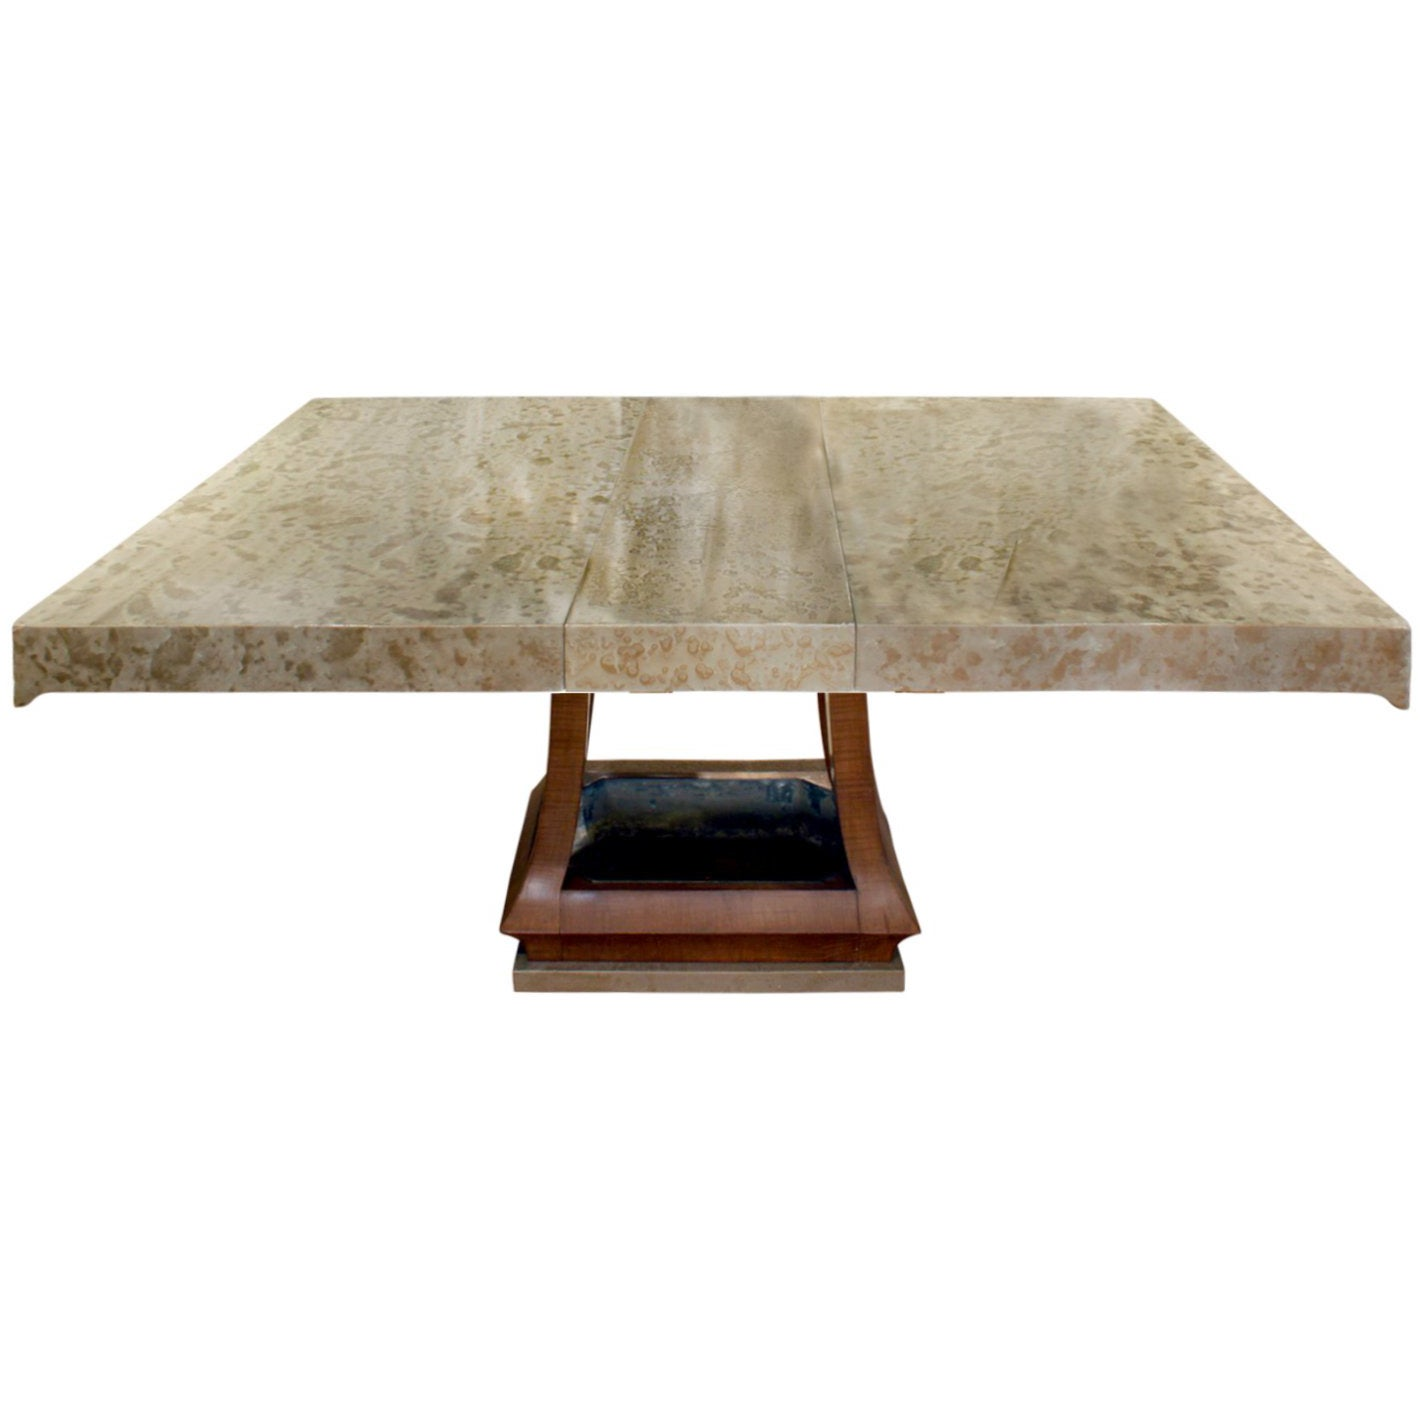 James Mont Asian Style Dining Table with Custom Oil Lacquer Finish, 1940s